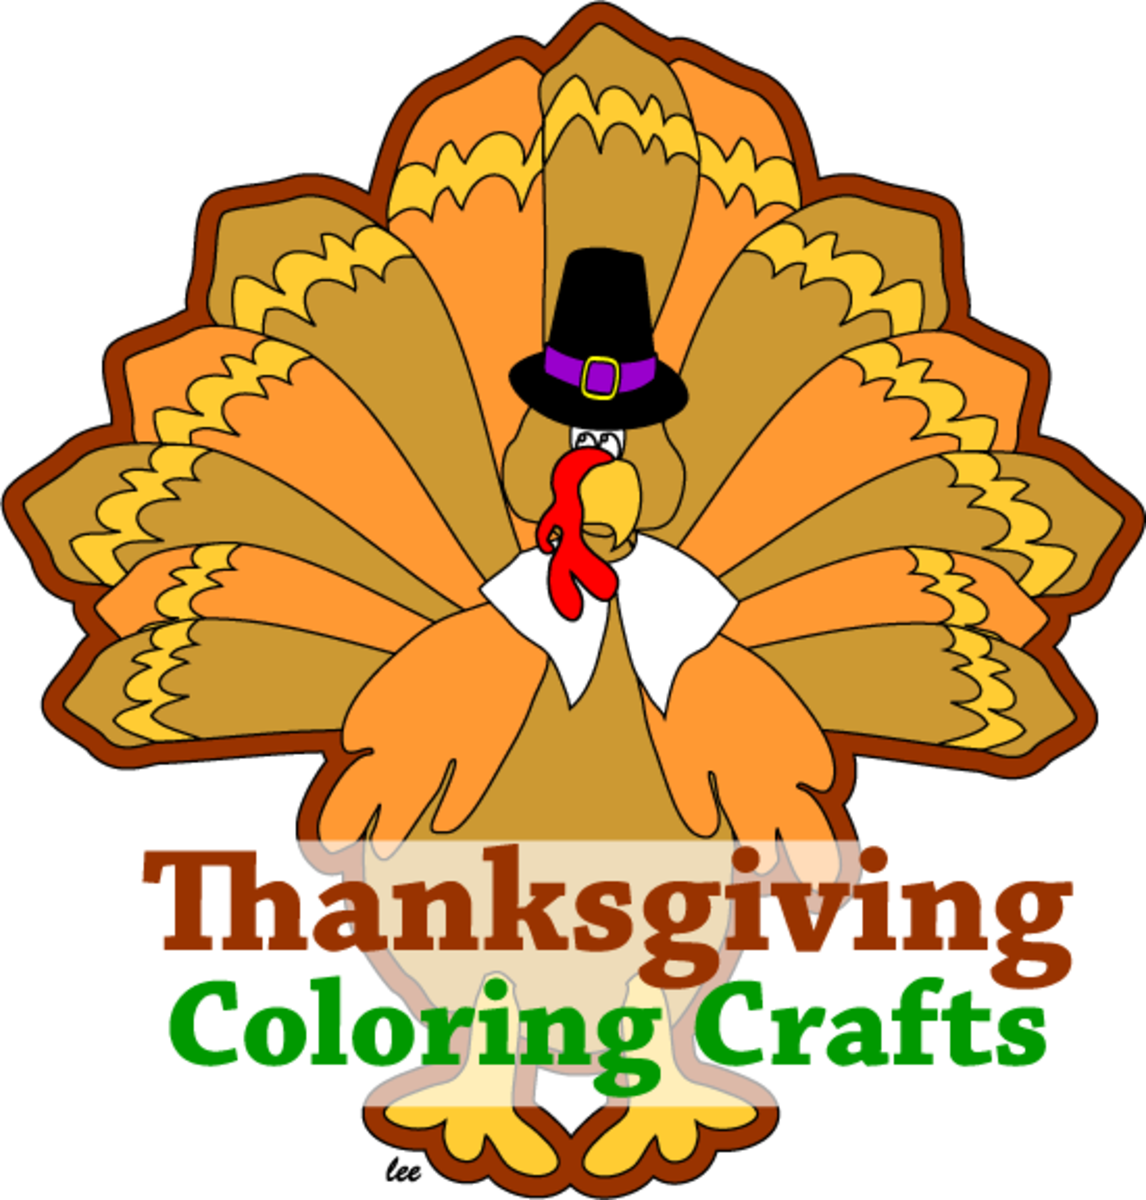 Thanksgiving coloring and crafts turkey logo